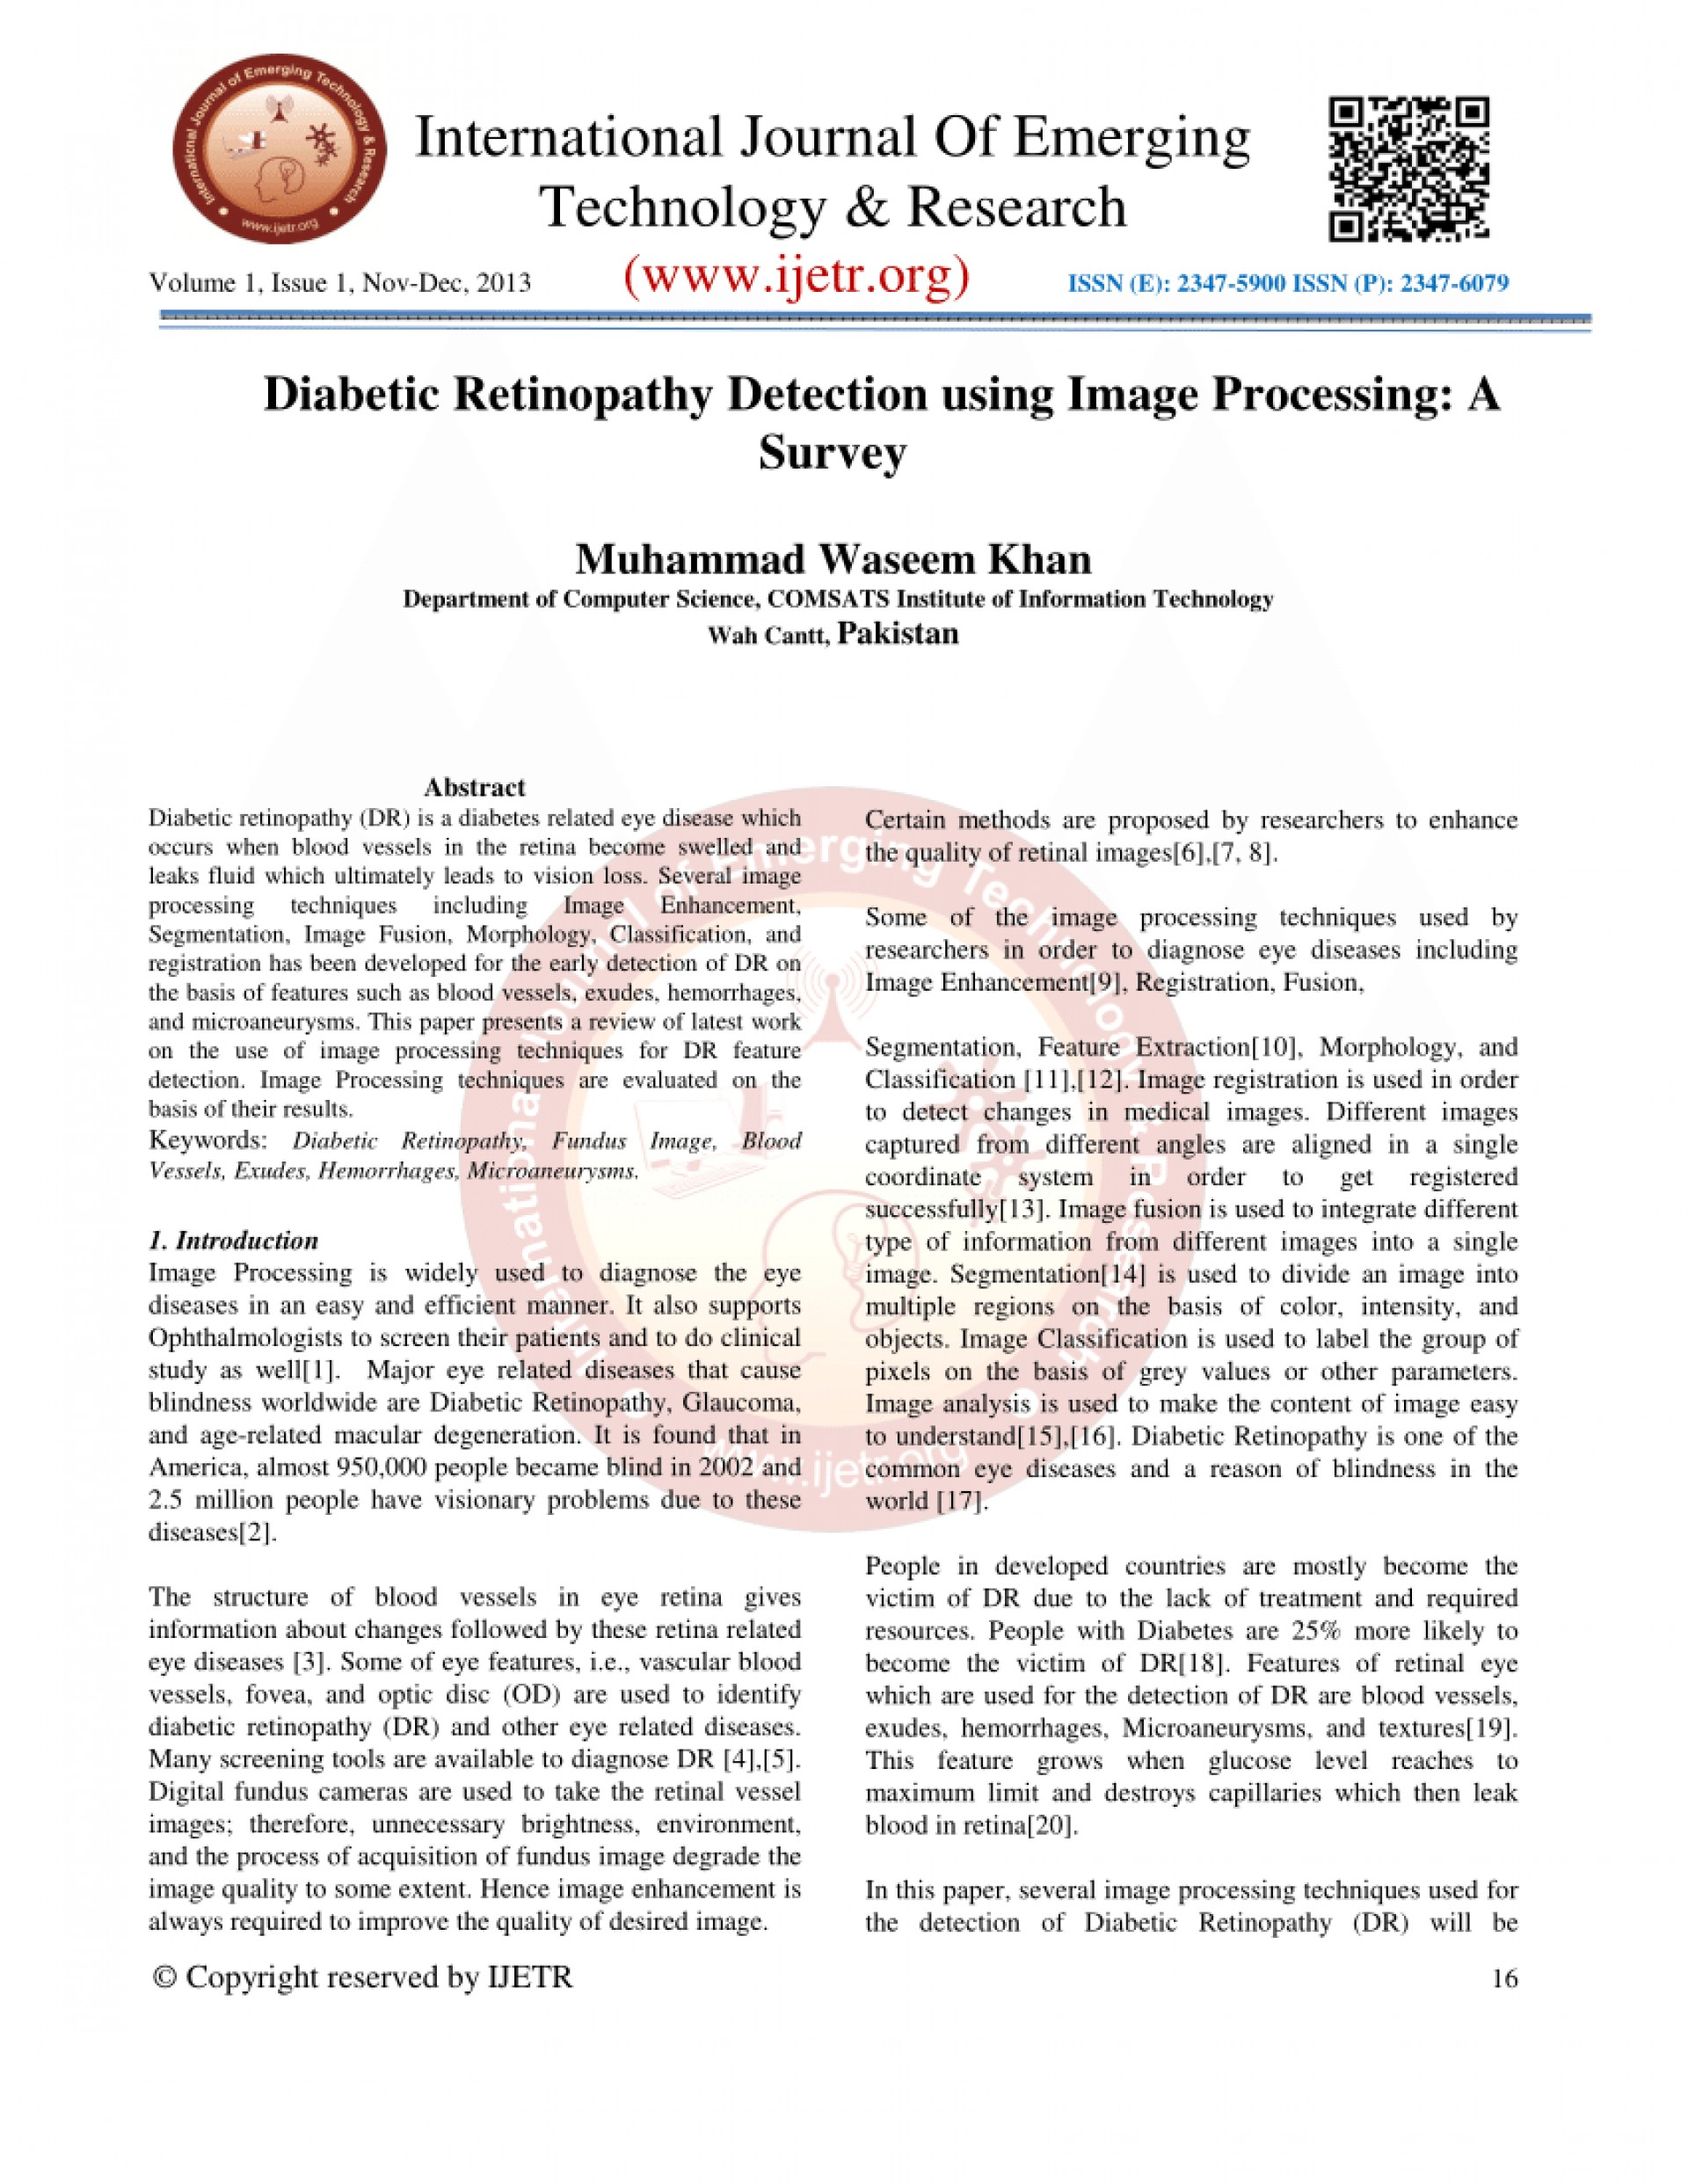 001 Diabetic Retinopathy Detection Research Paper Unusual 1920